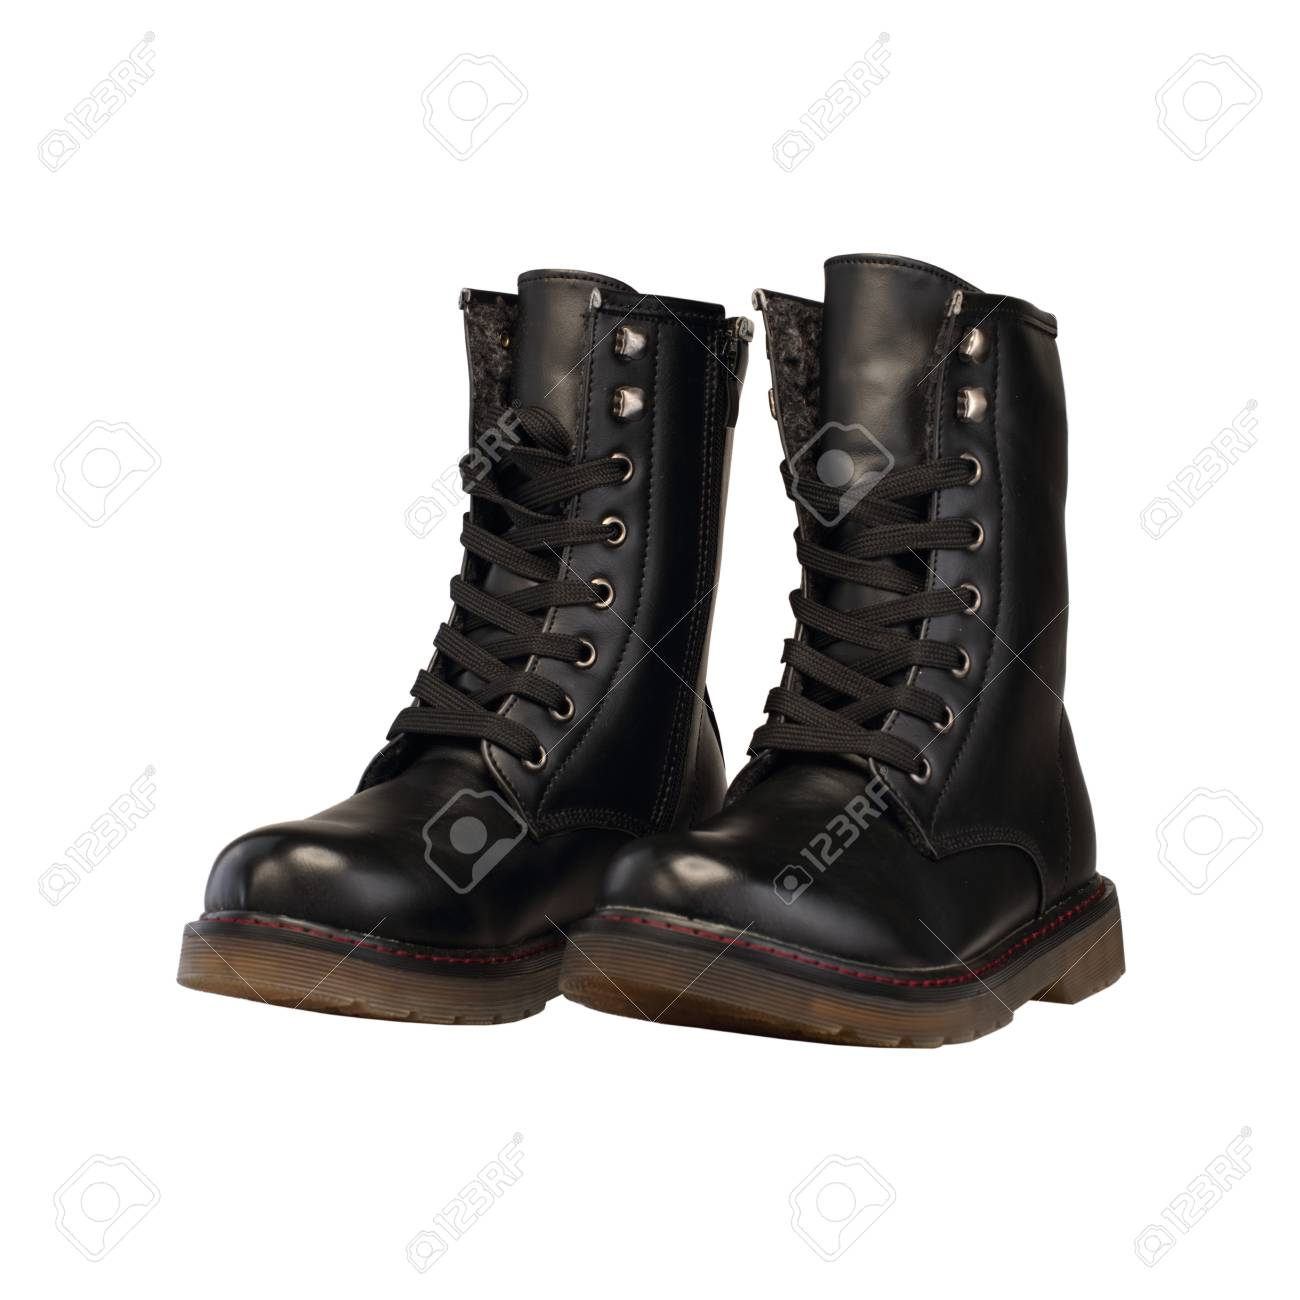 Women's Military Boots Stock Photo